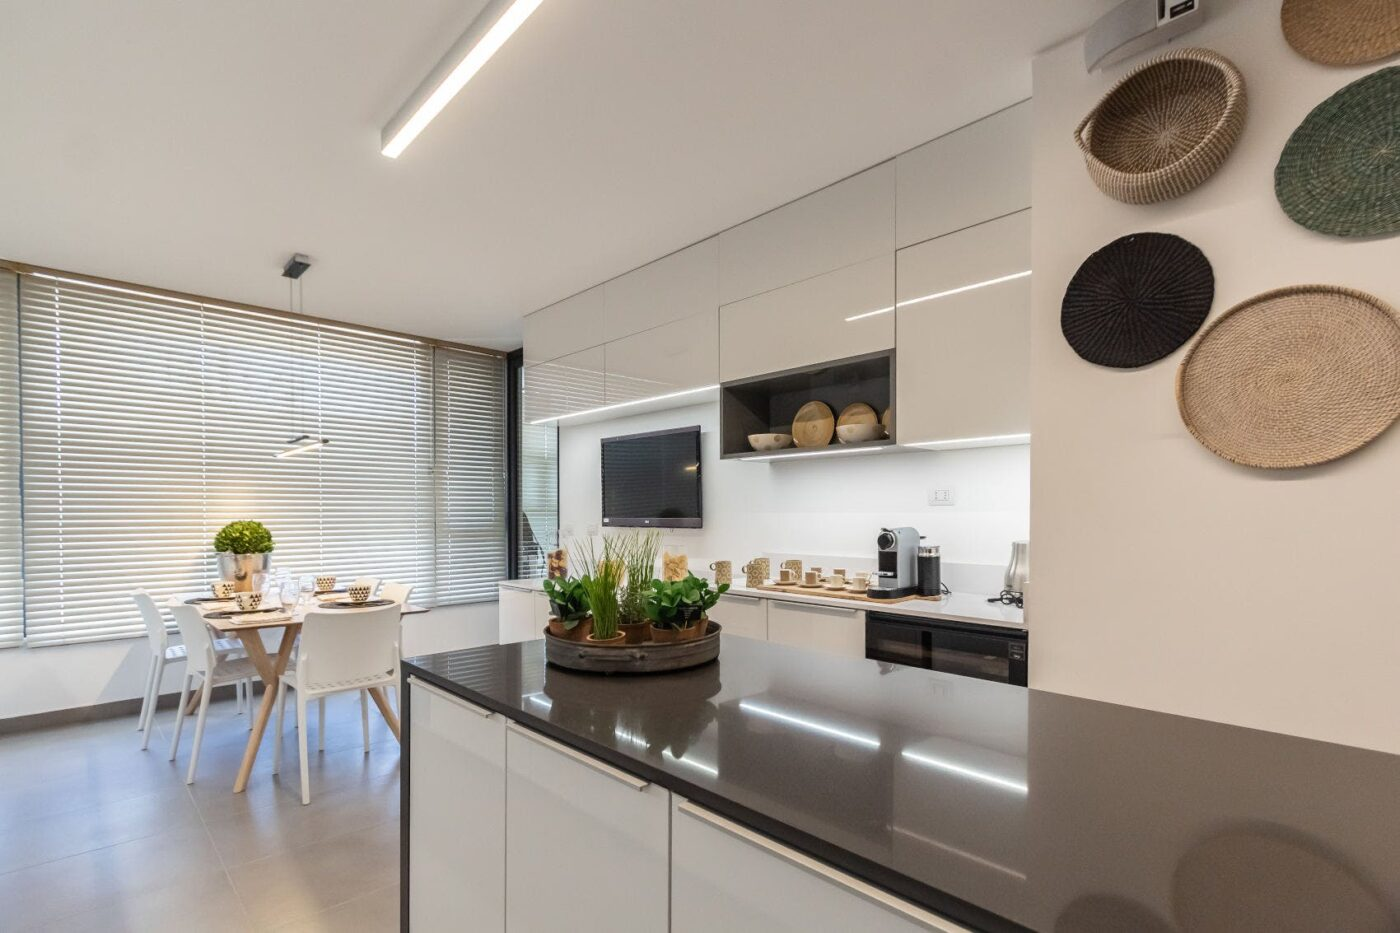 Image of Encimera SIlestone Marengo 1 in Spring at home: let's make the most of it! - Cosentino